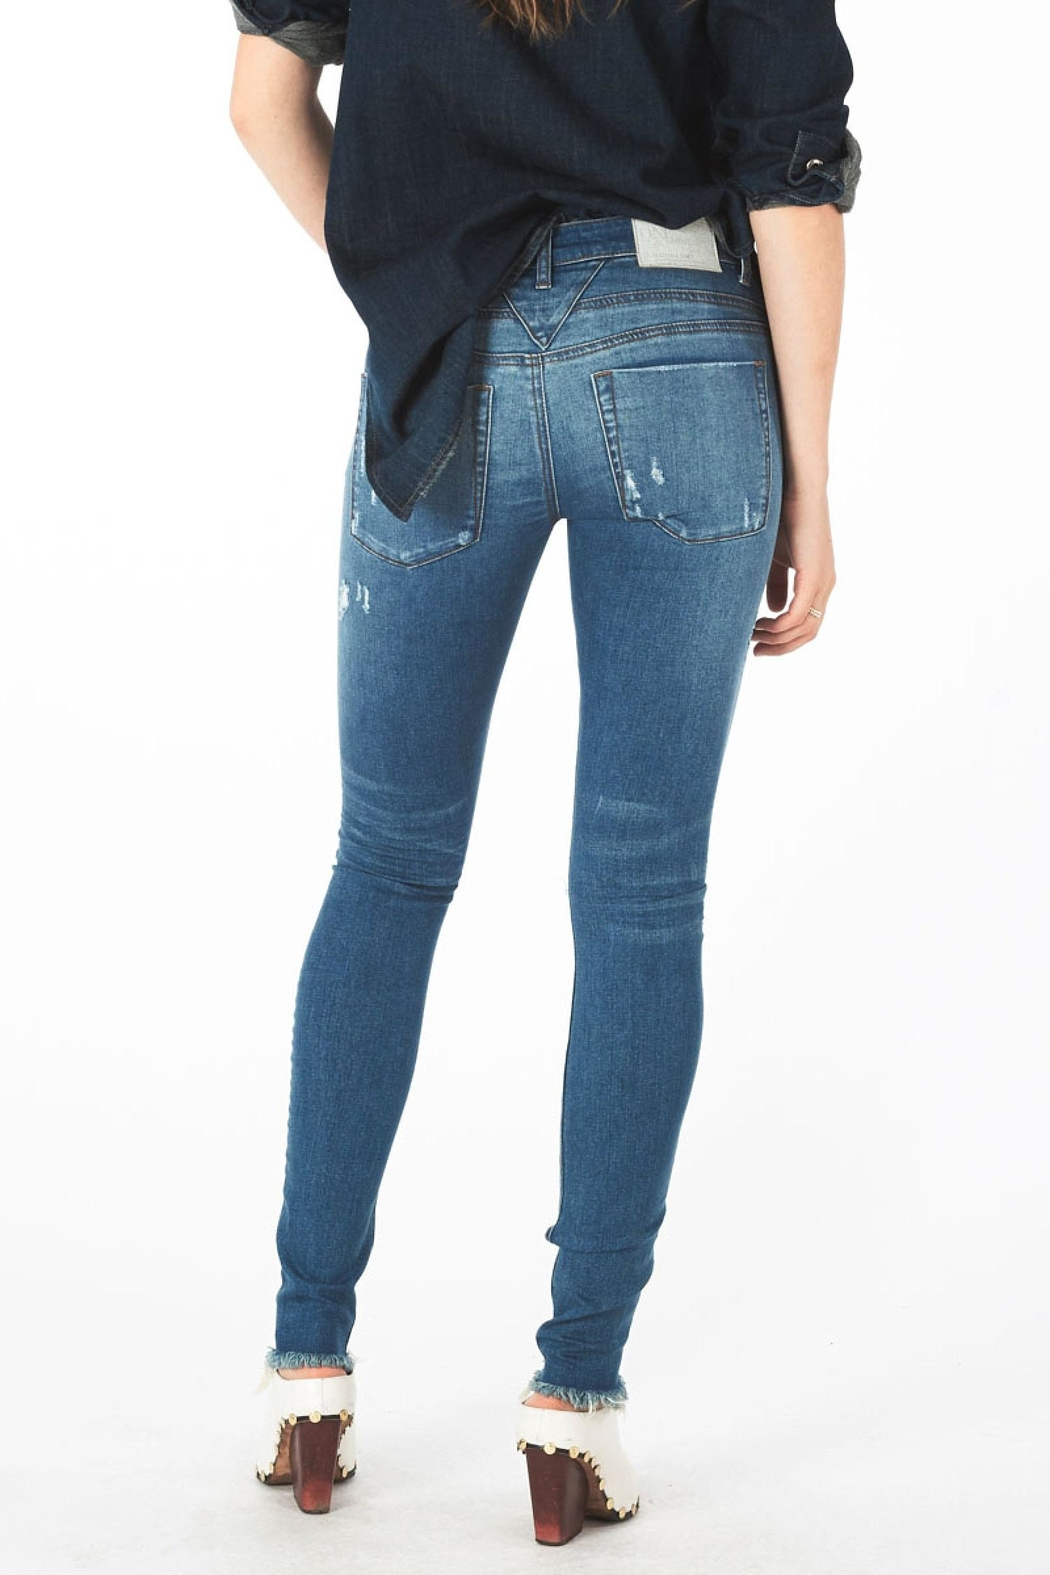 One Teaspoon Hoodlums Skinny Jean - Front Full Image